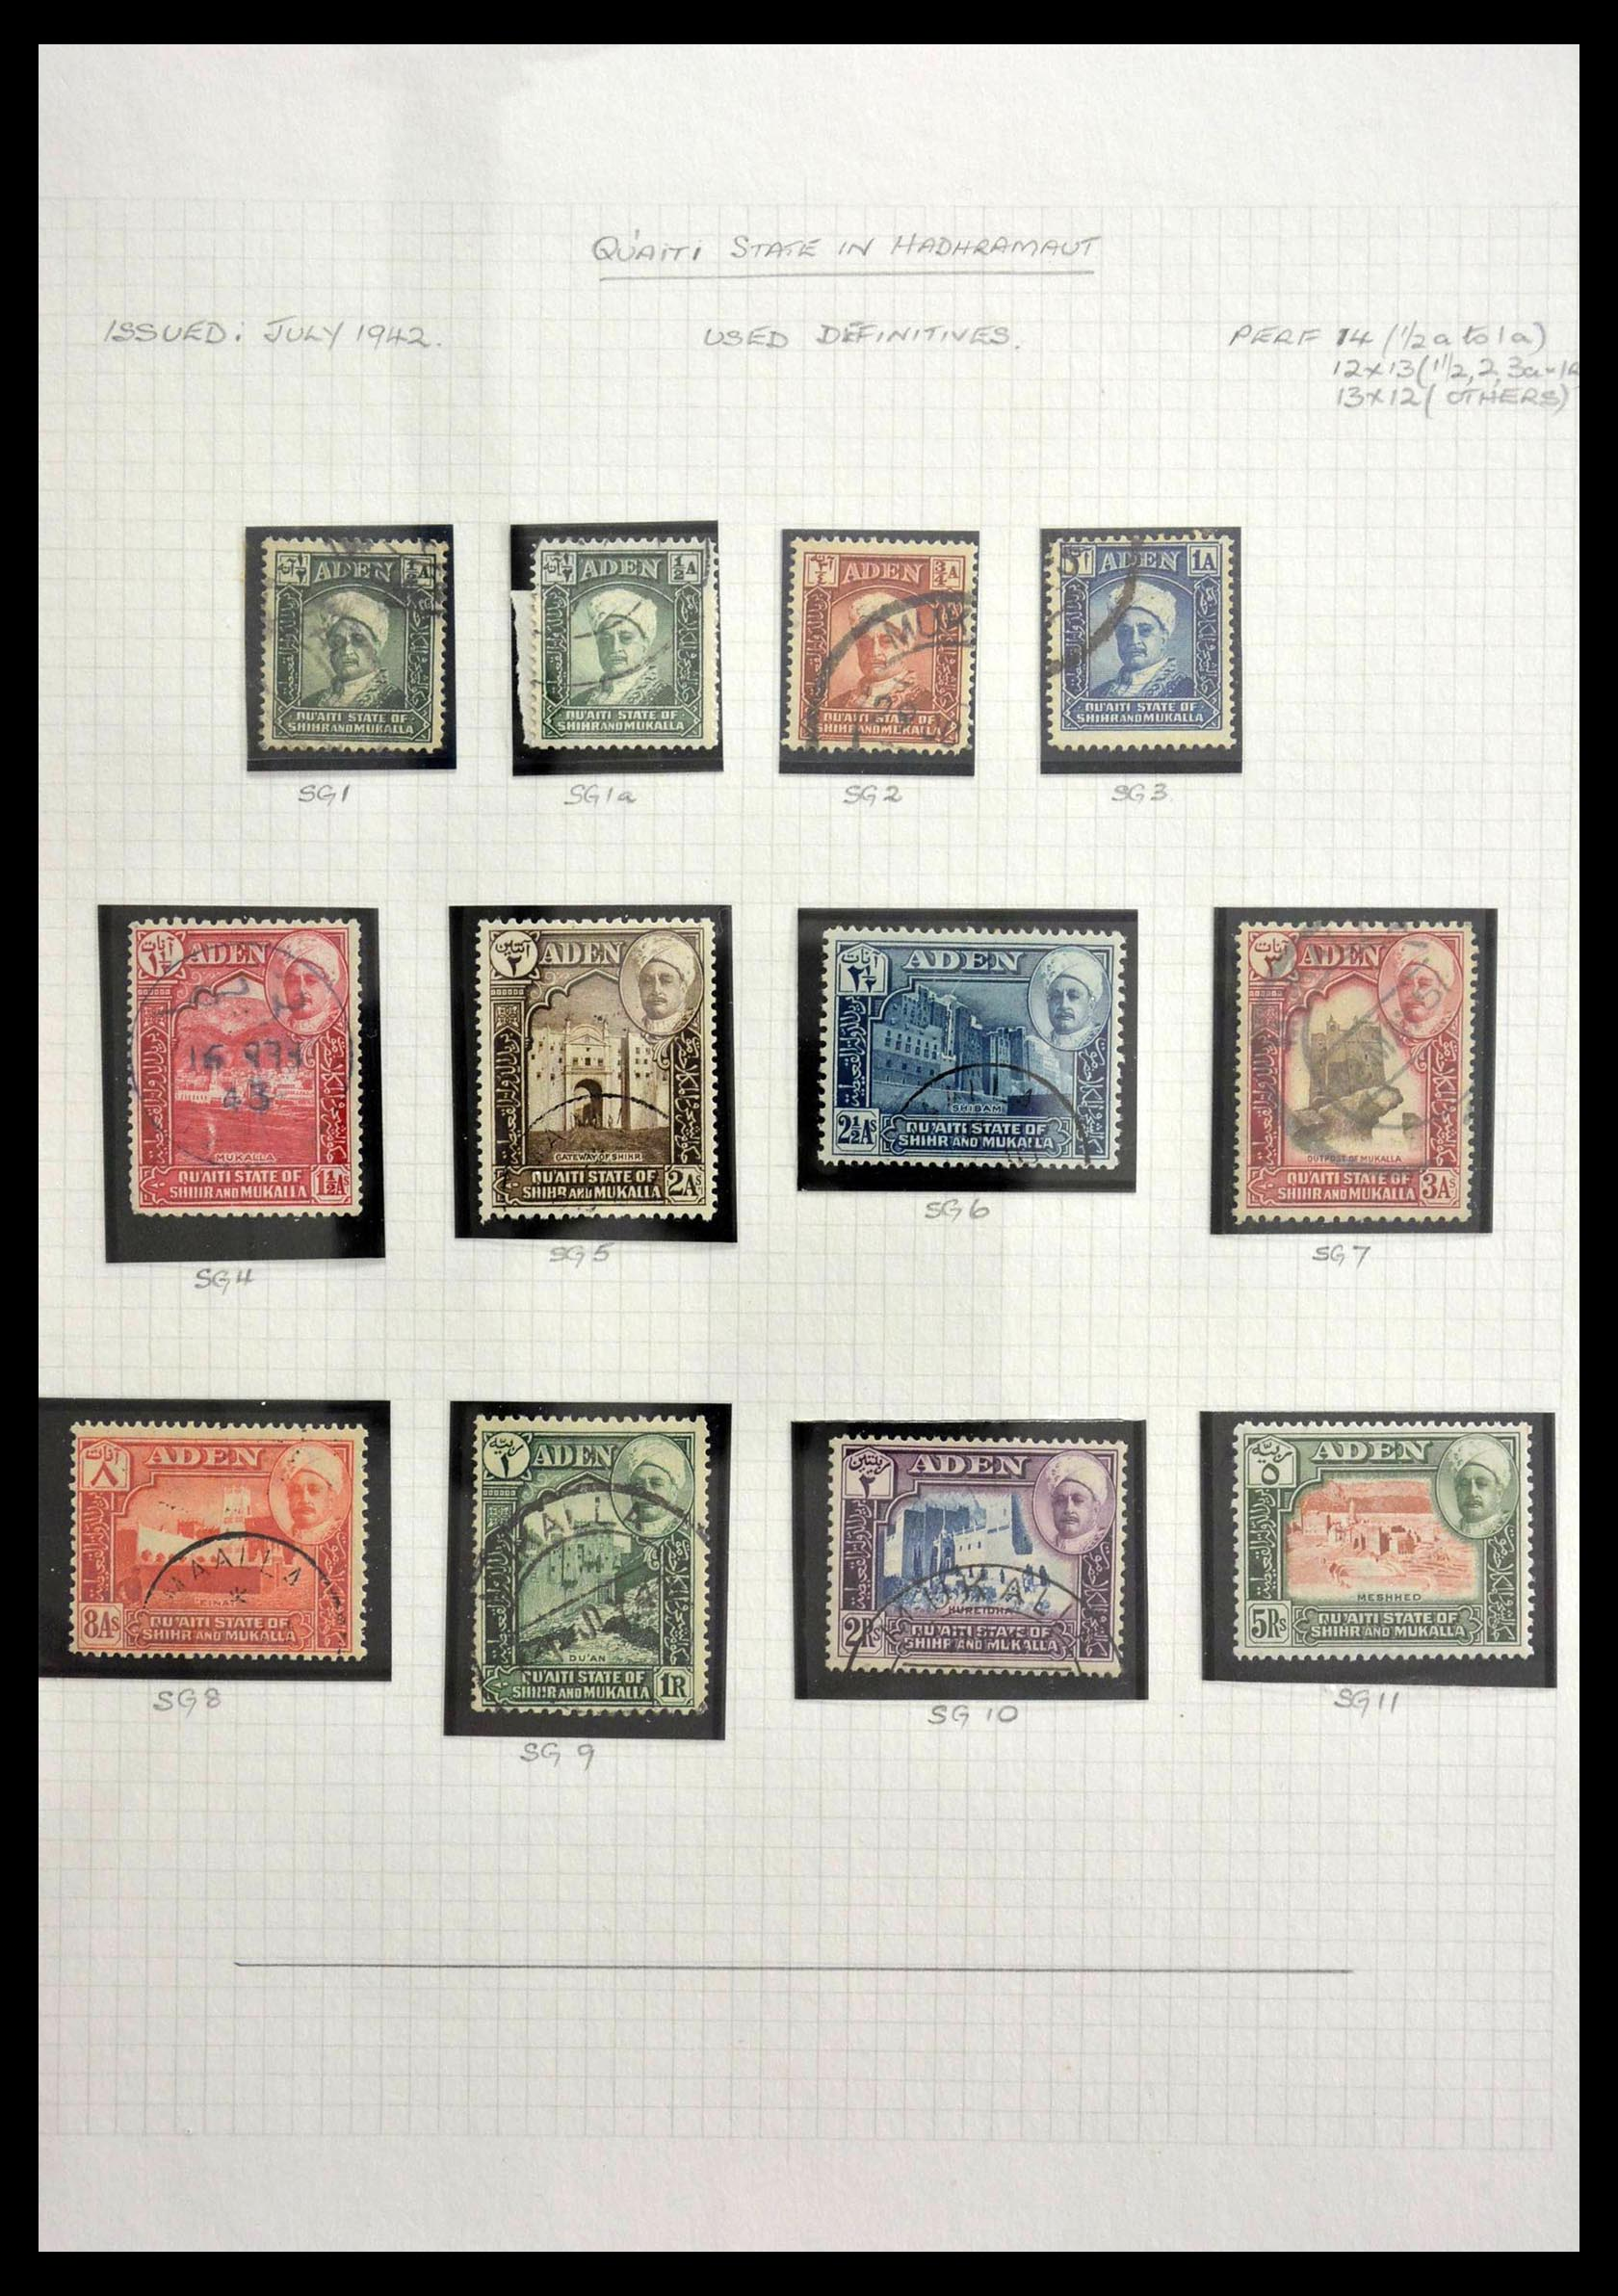 28672 002 - Stamp collection 28672 Aden Qu'aiti State 1942-1966.